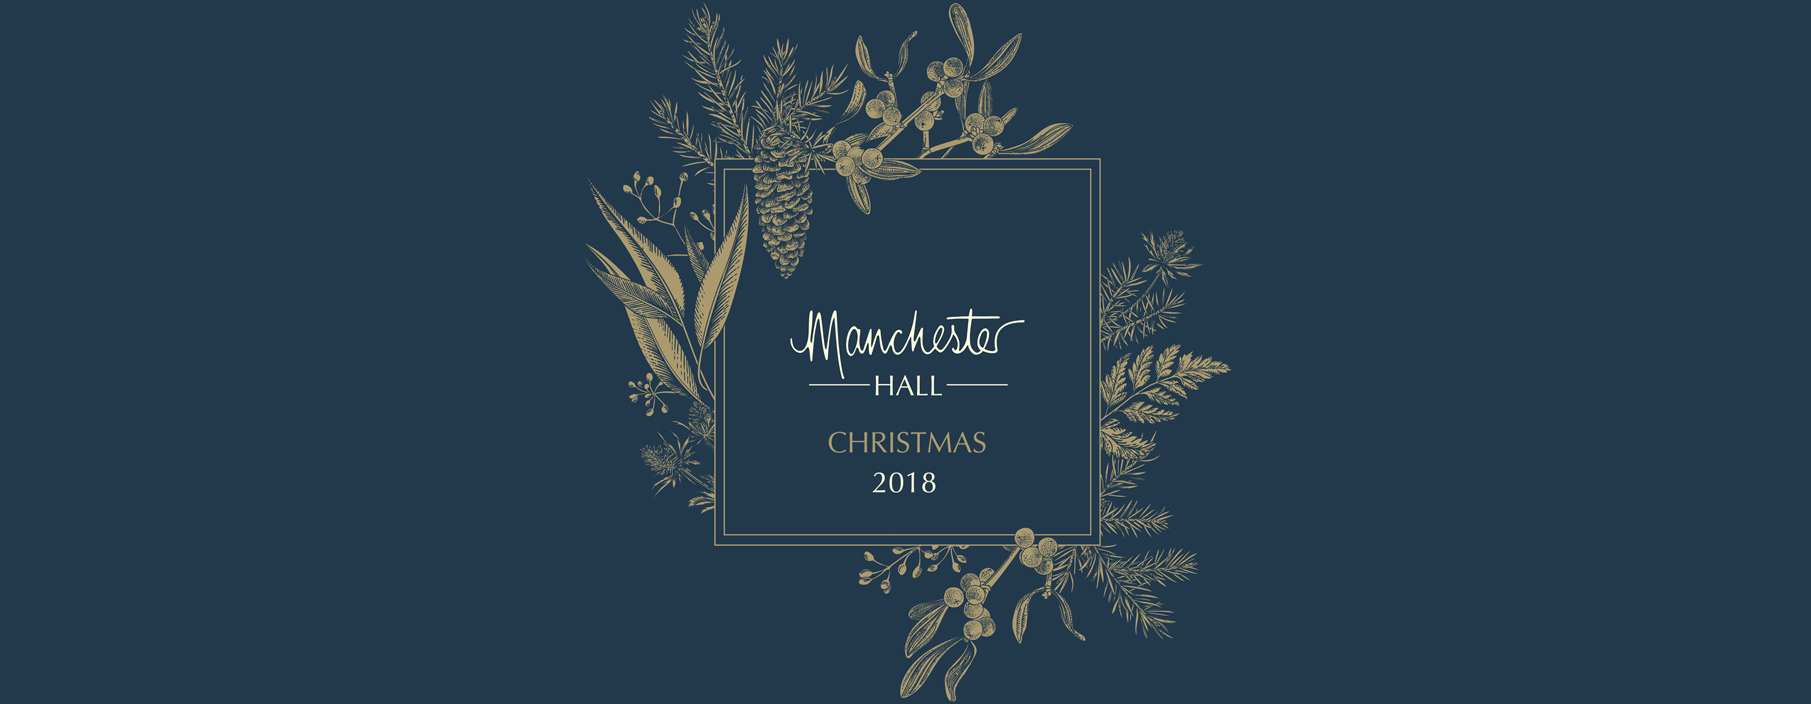 20181129 Manchester Hall Xmas Banner